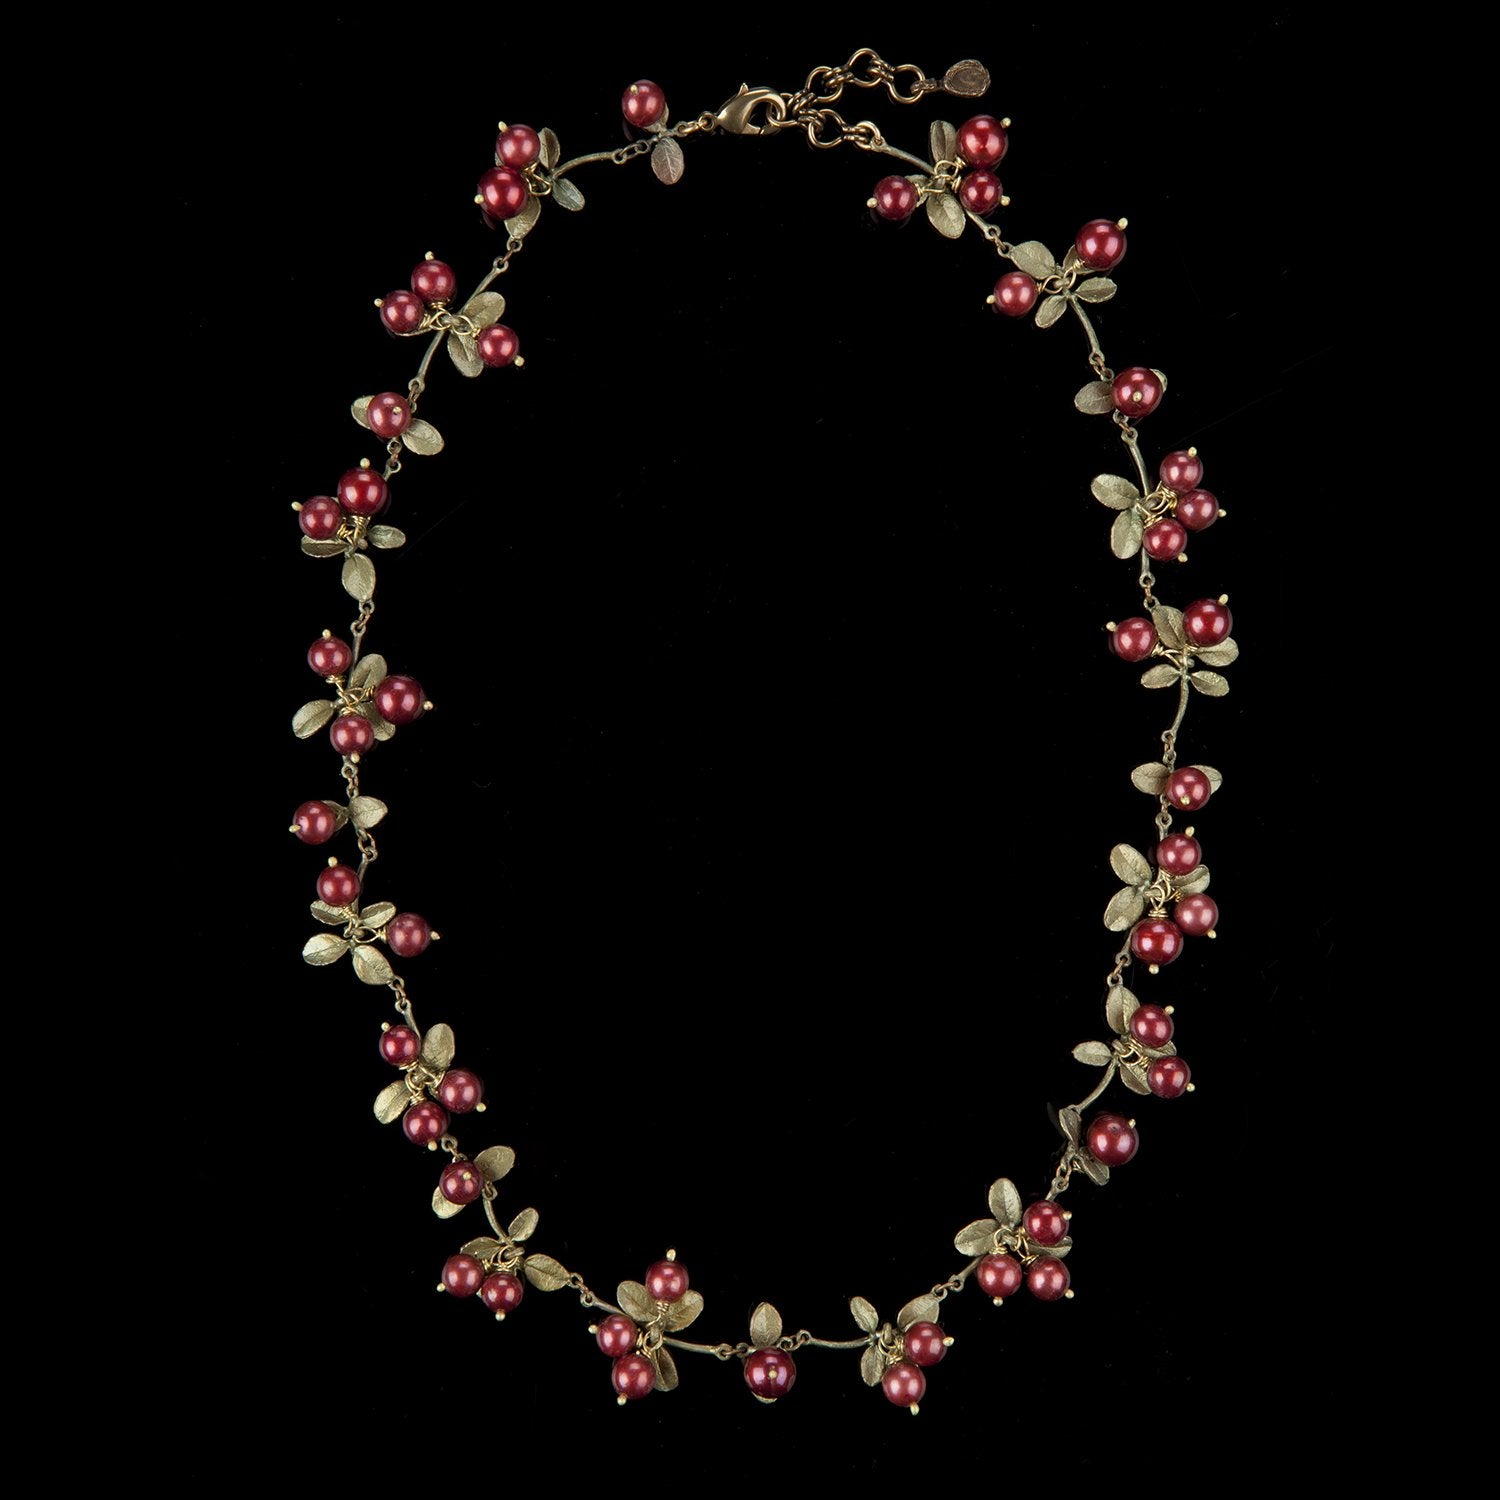 Cranberry Necklace - Cluster